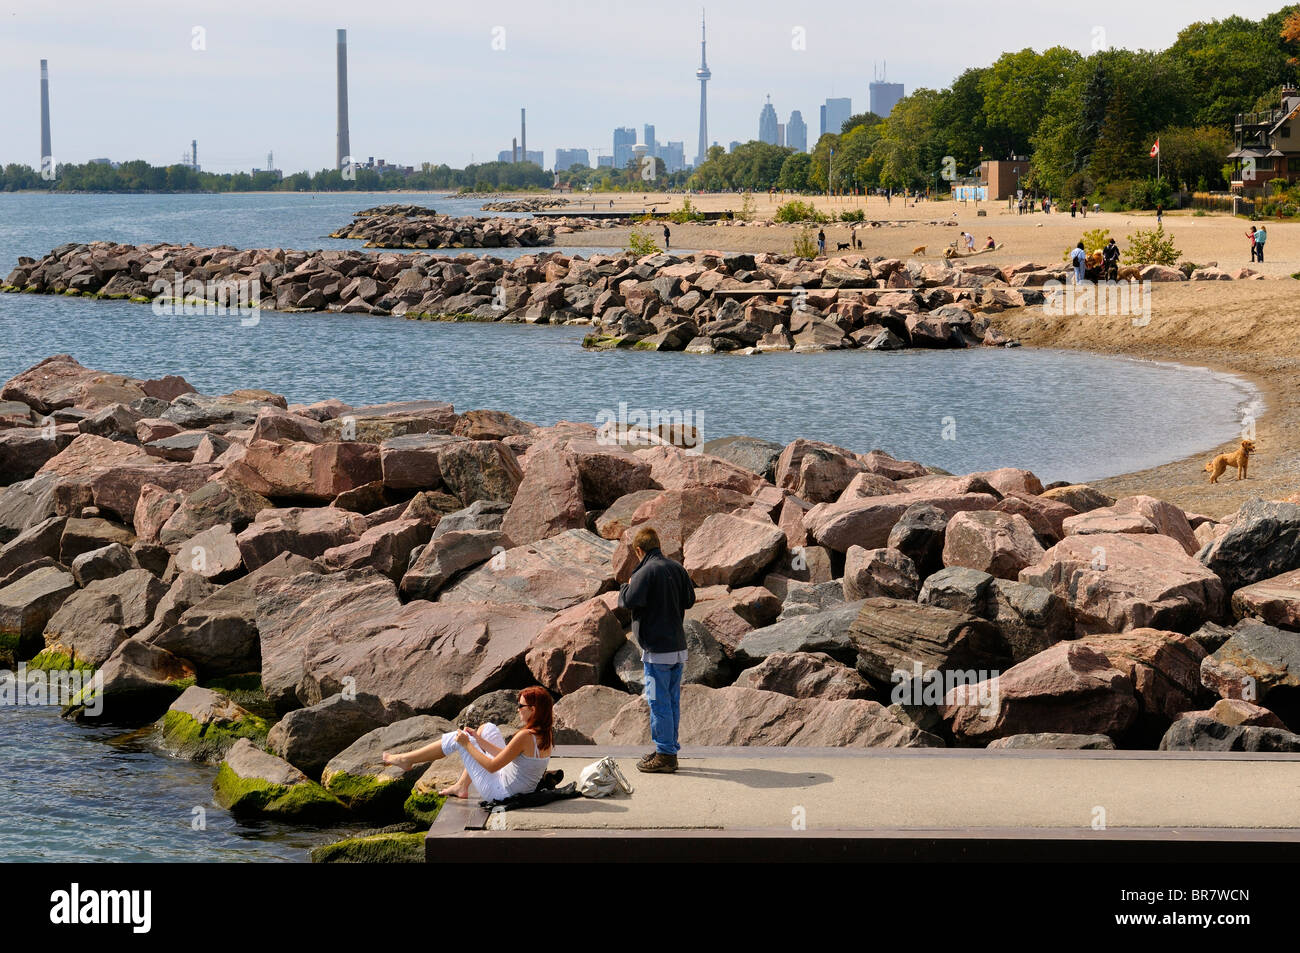 Coastline view of Toronto Beaches Park on Lake Ontario with dogs and sunbathers and city skyline - Stock Image